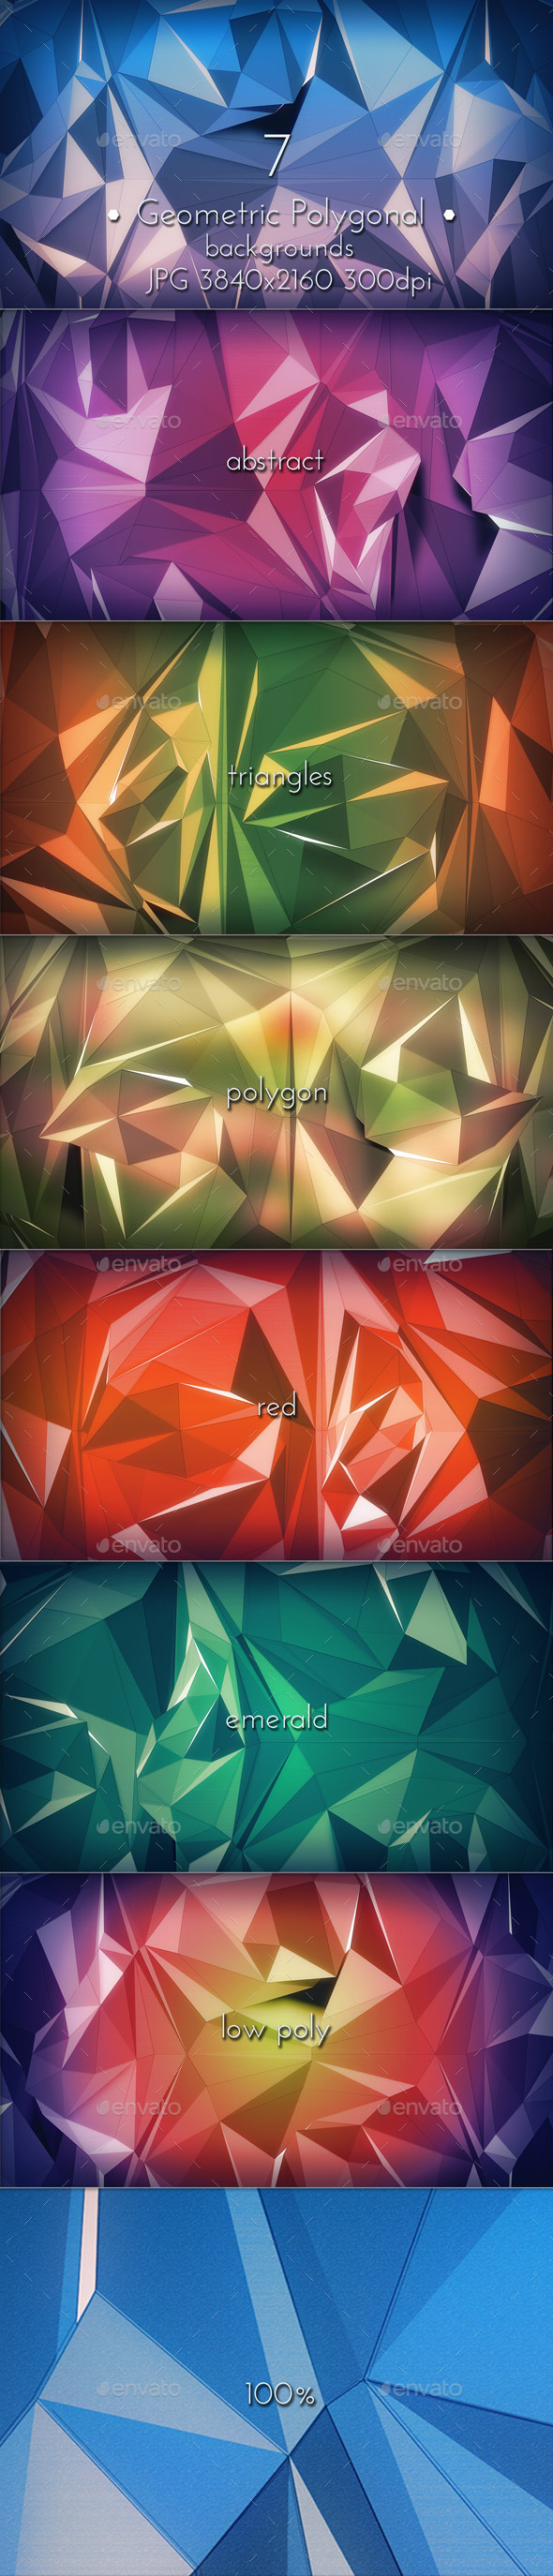 Geometric Polygonal Triangles - Abstract Backgrounds